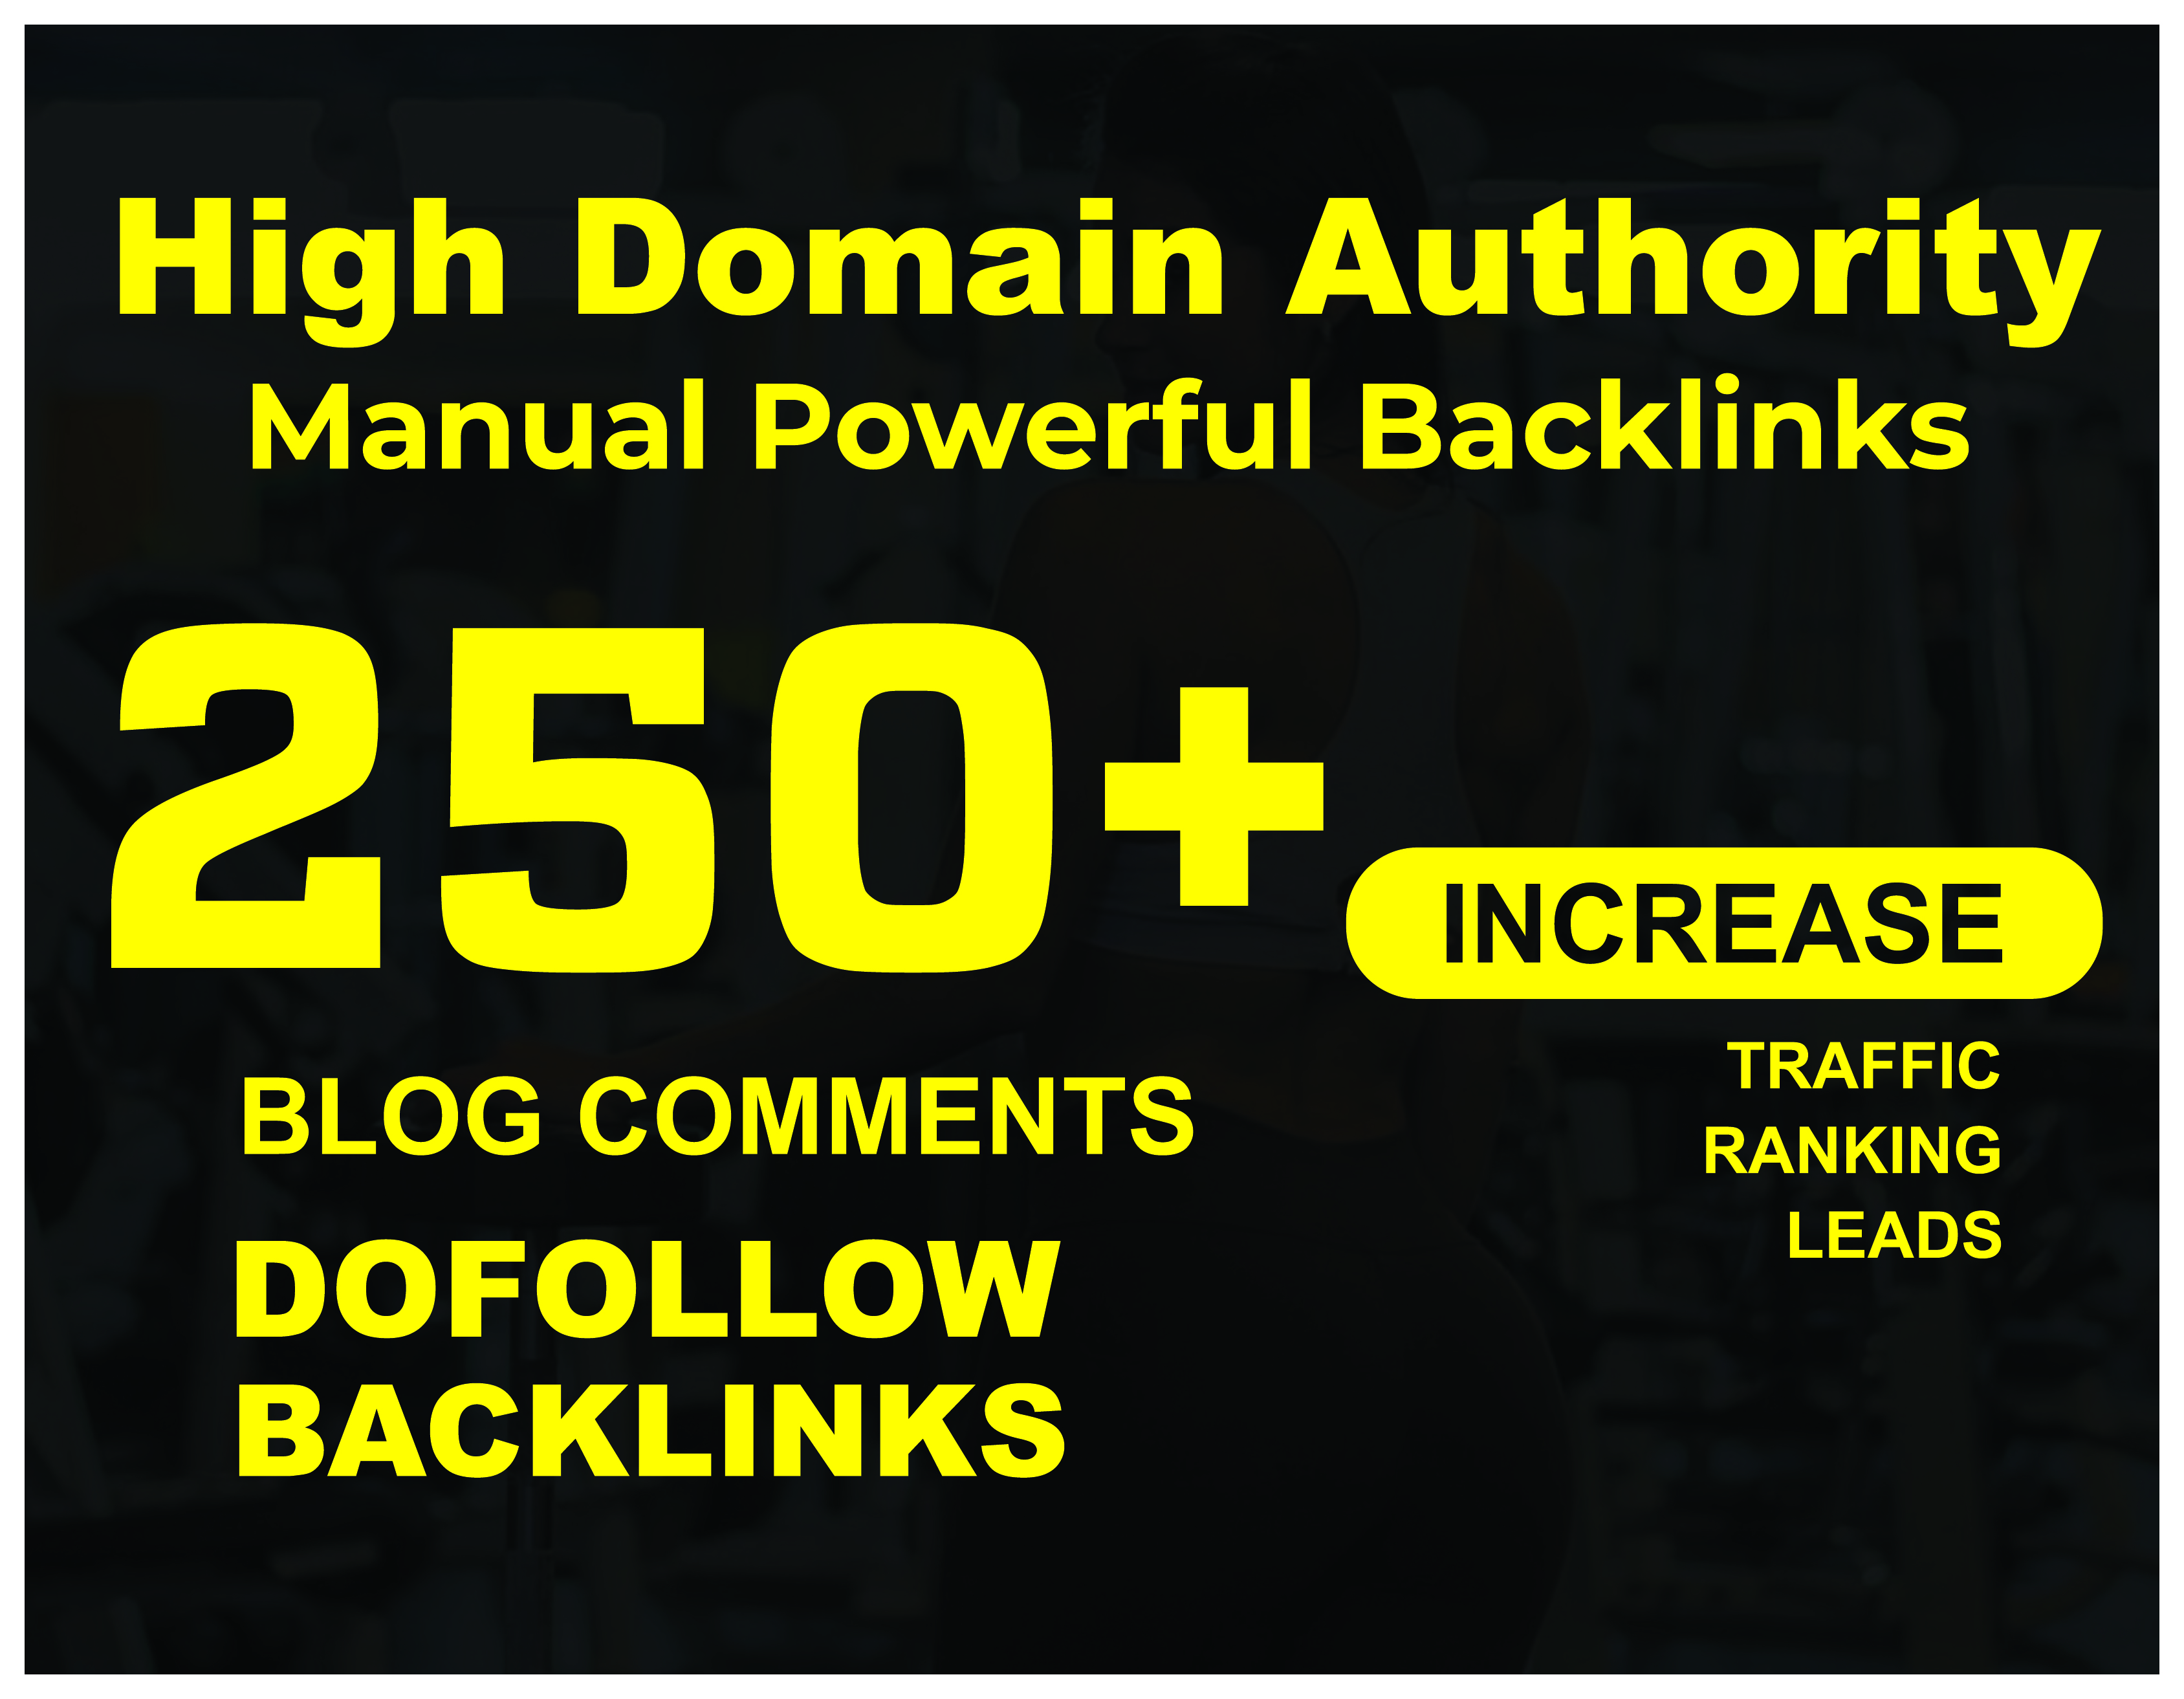 I will Do 250+ MANUAL Powerful Dofollow Blog comment Backlinks For Google Ranking